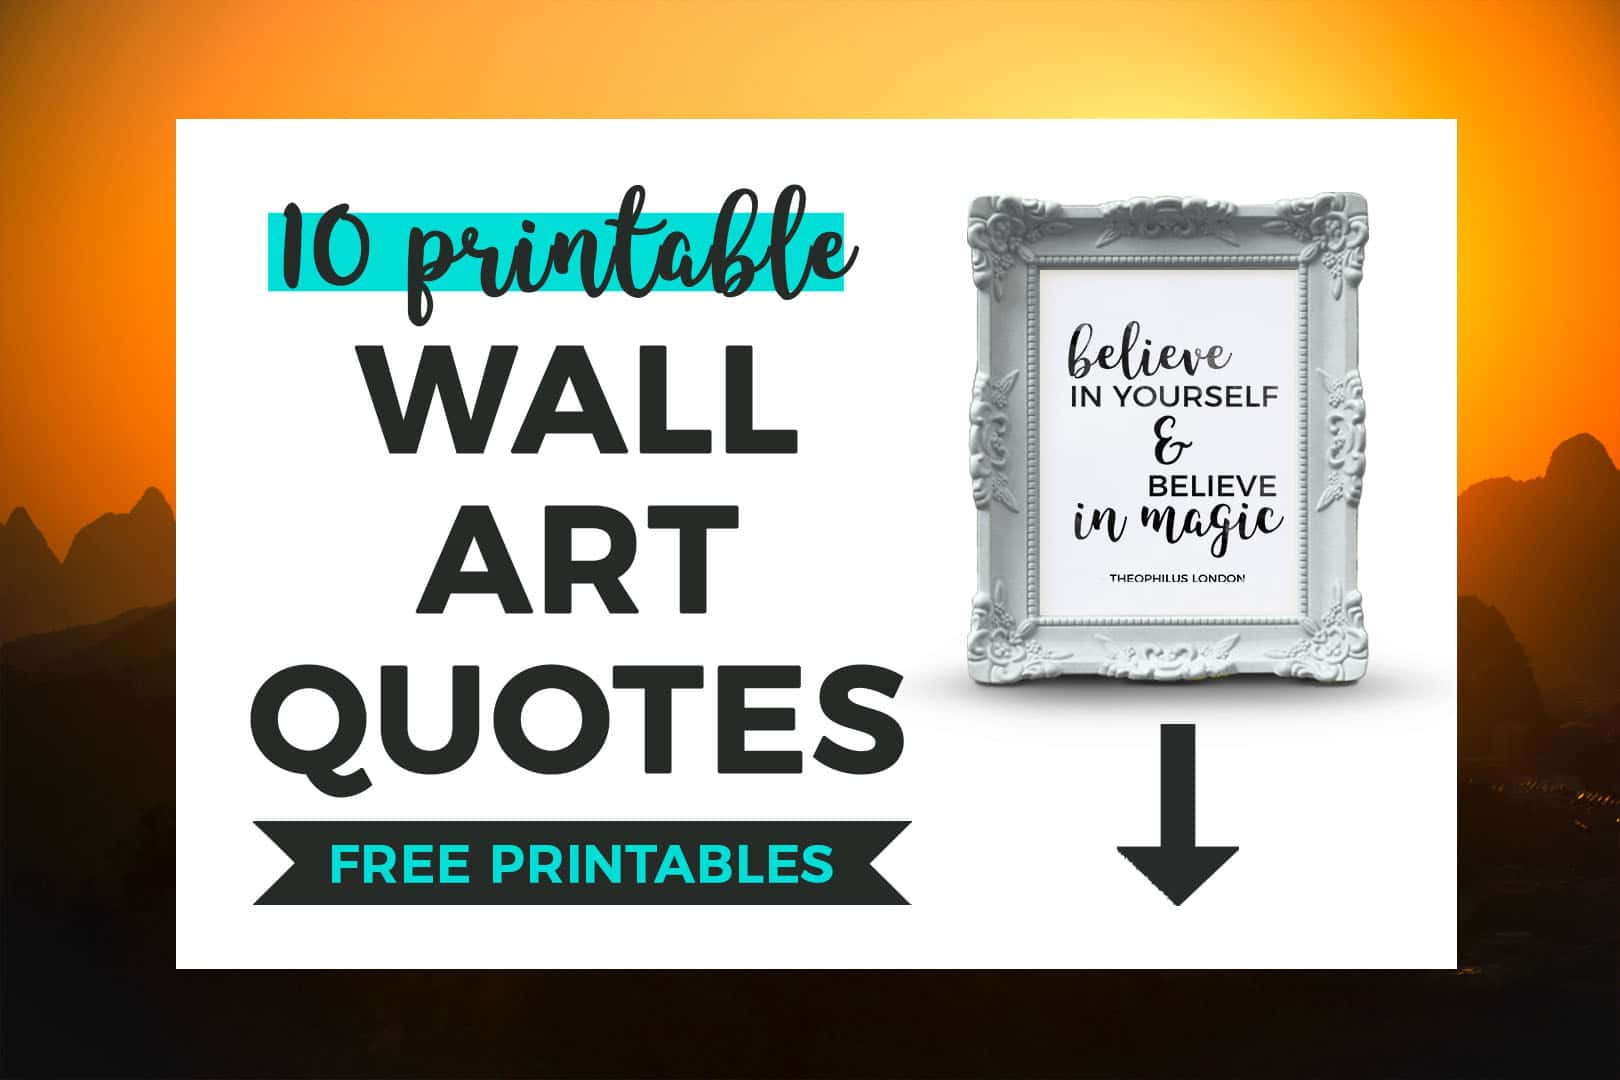 photograph relating to Free Quote Printable identify 10 Printable Black and White Quotations that Really encourage Its All